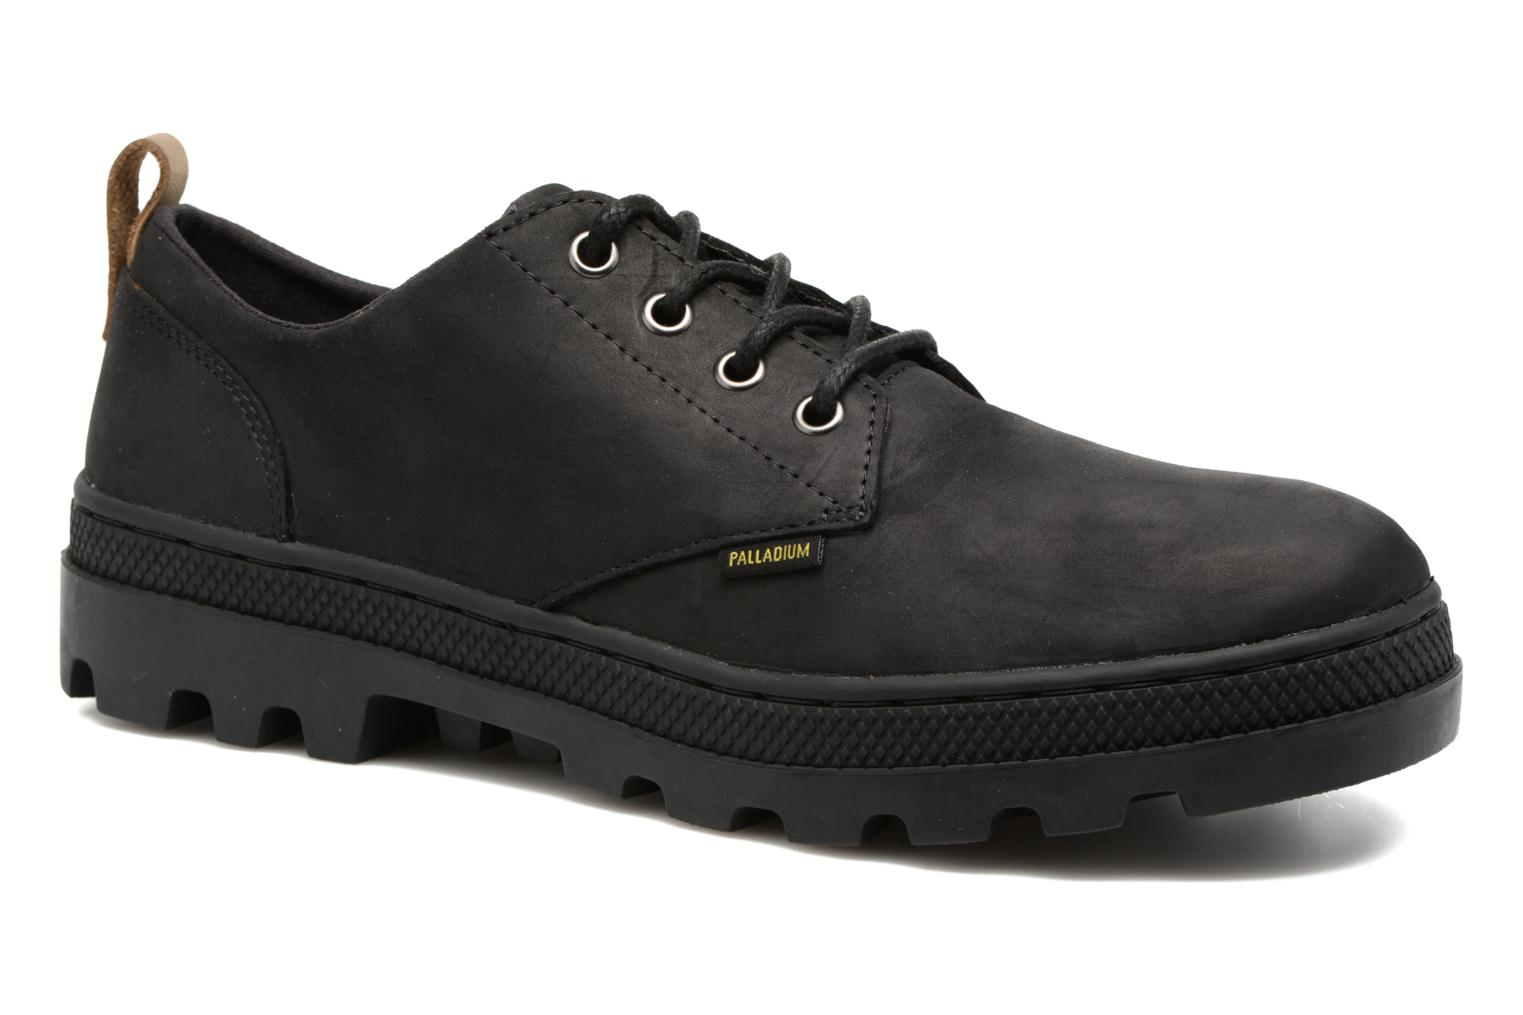 Palladium Pallabosse Low Negro SOHoiBsI